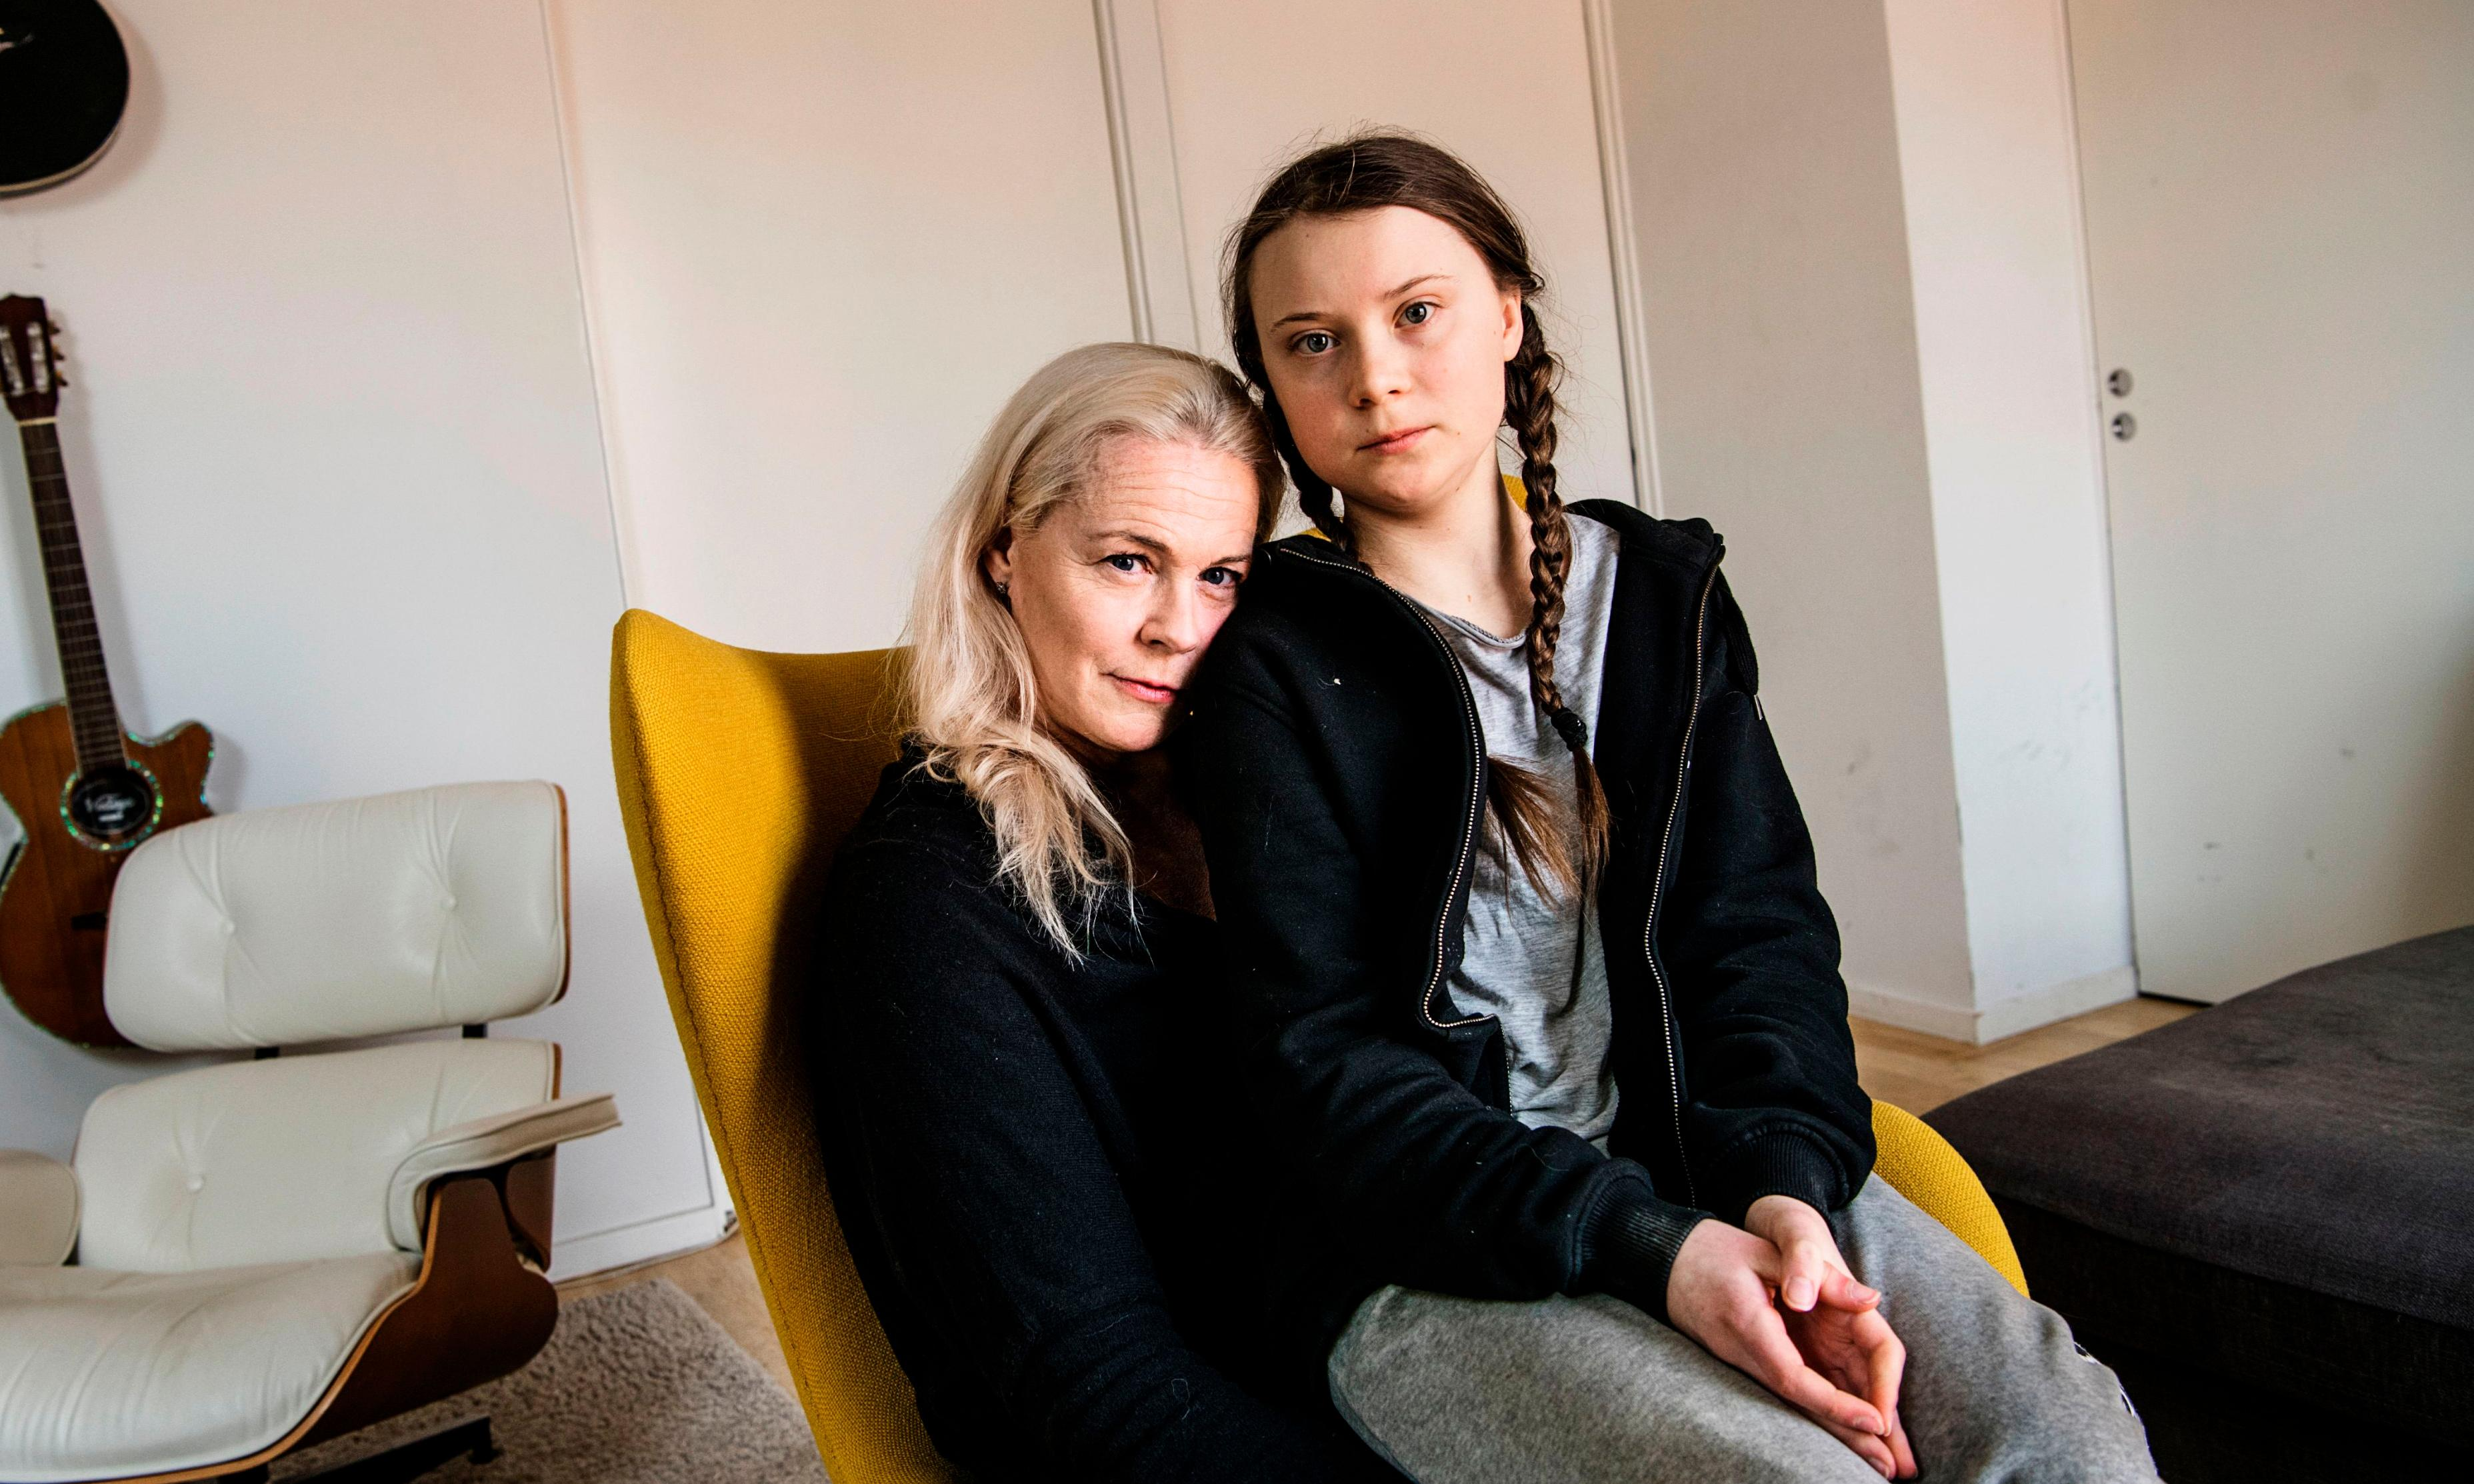 Malena Ernman on daughter Greta Thunberg: 'She was slowly disappearing into some kind of darkness'